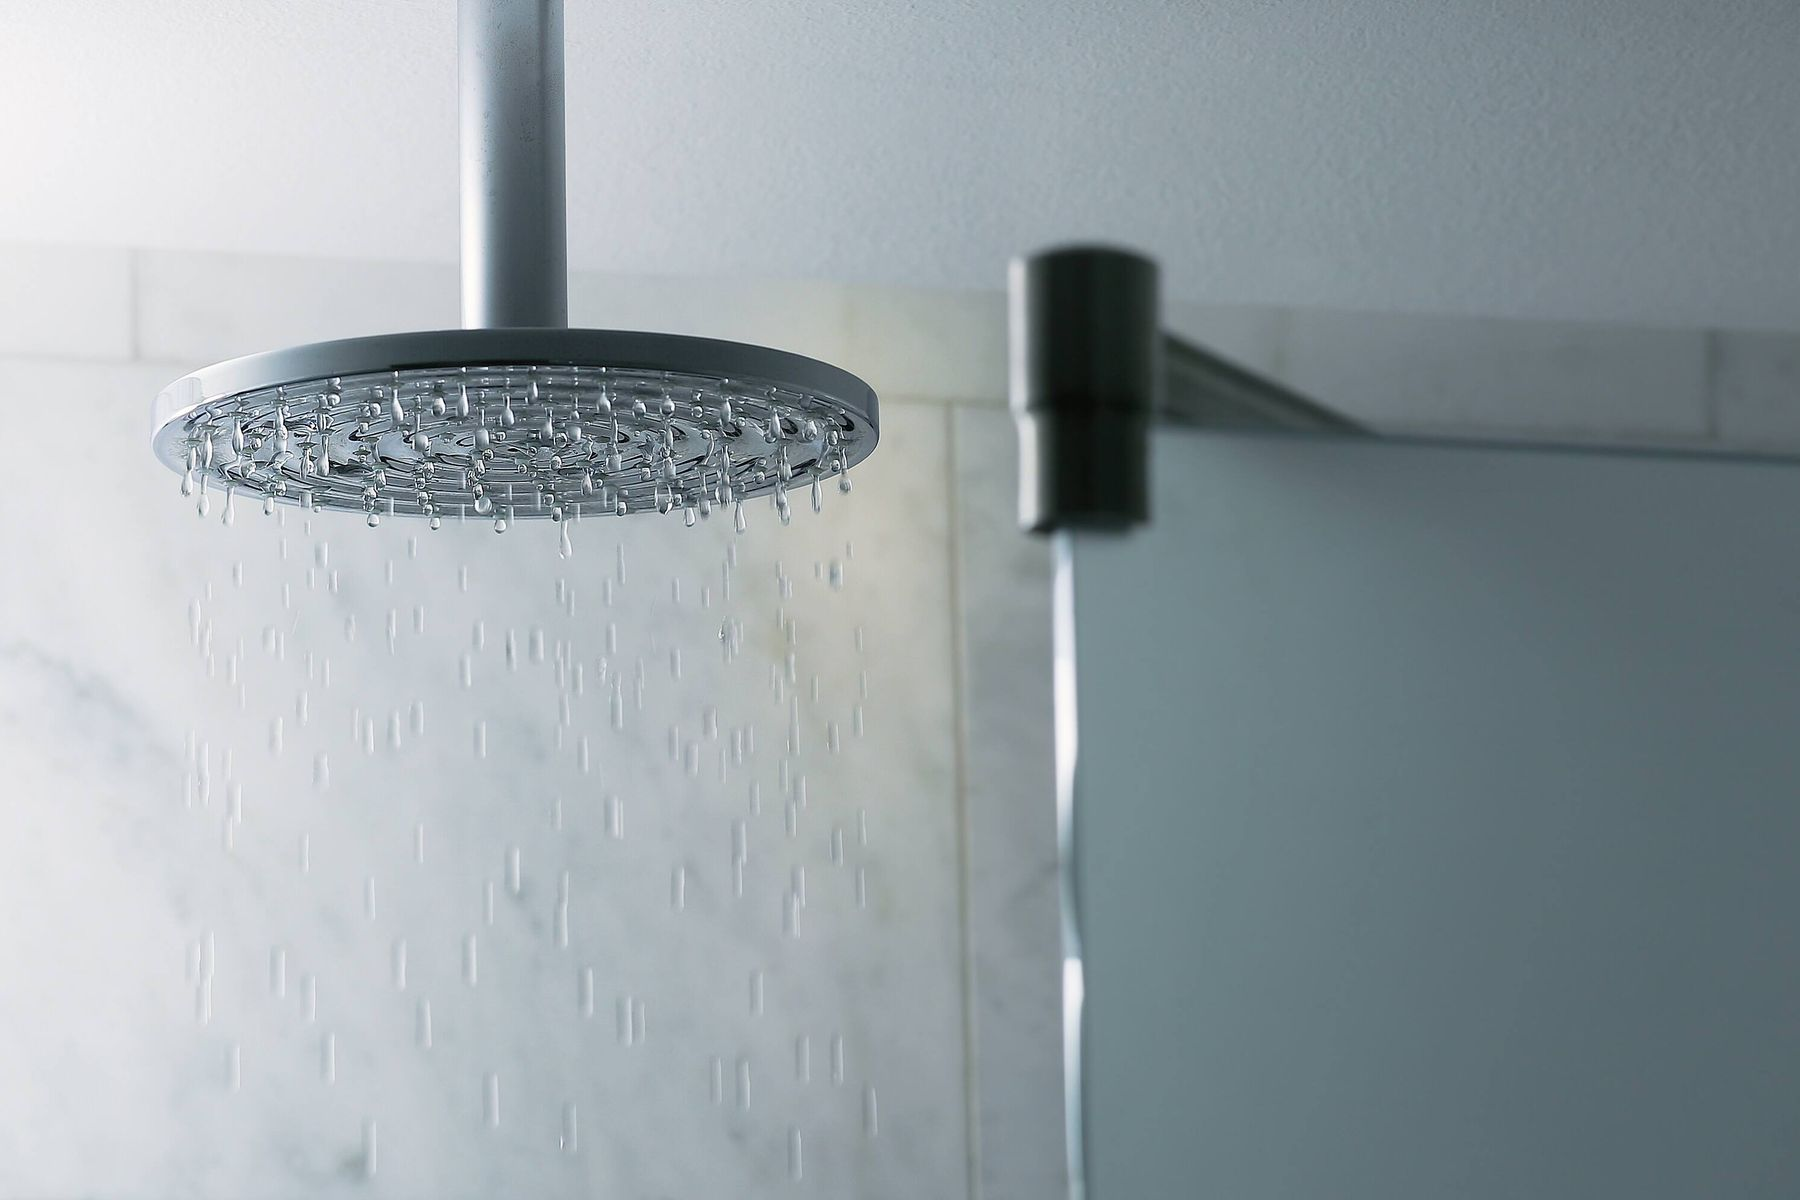 Too many blotchy paint stains on your shower head post renovation? Here's how you can get them off